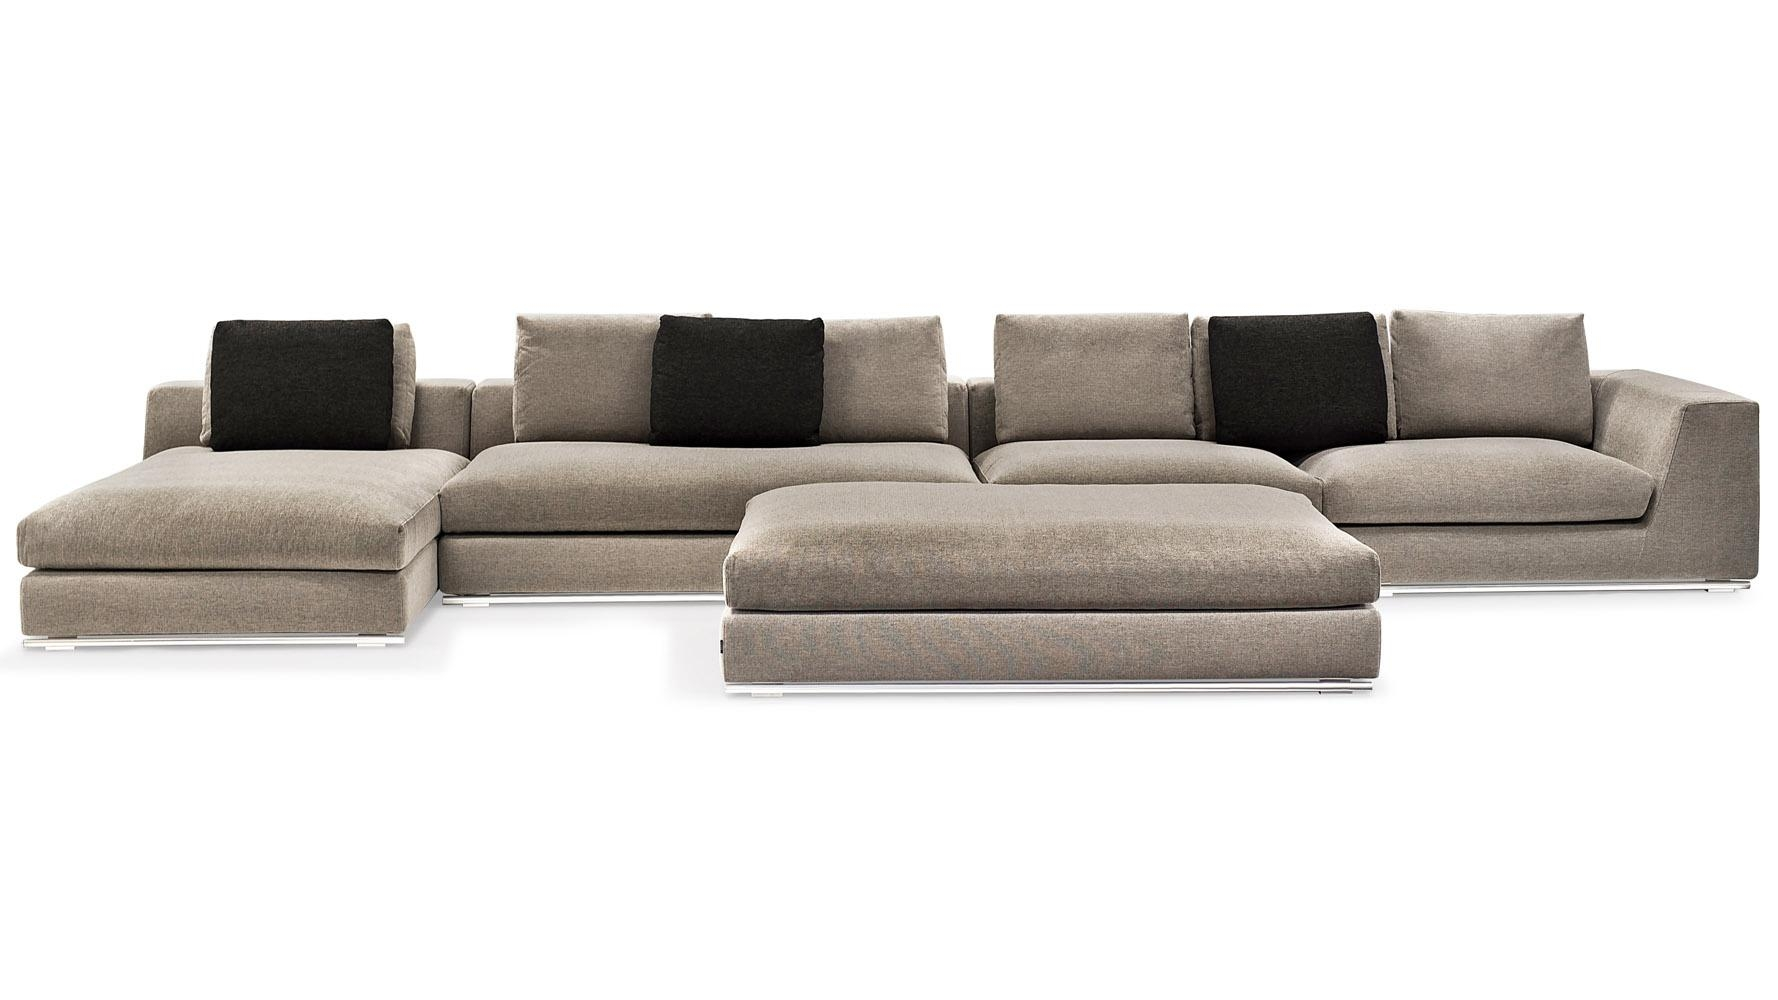 Comodo Sectional Sofa With Ottoman – Grey | Zuri Furniture With Armless Sectional Sofa (View 7 of 15)